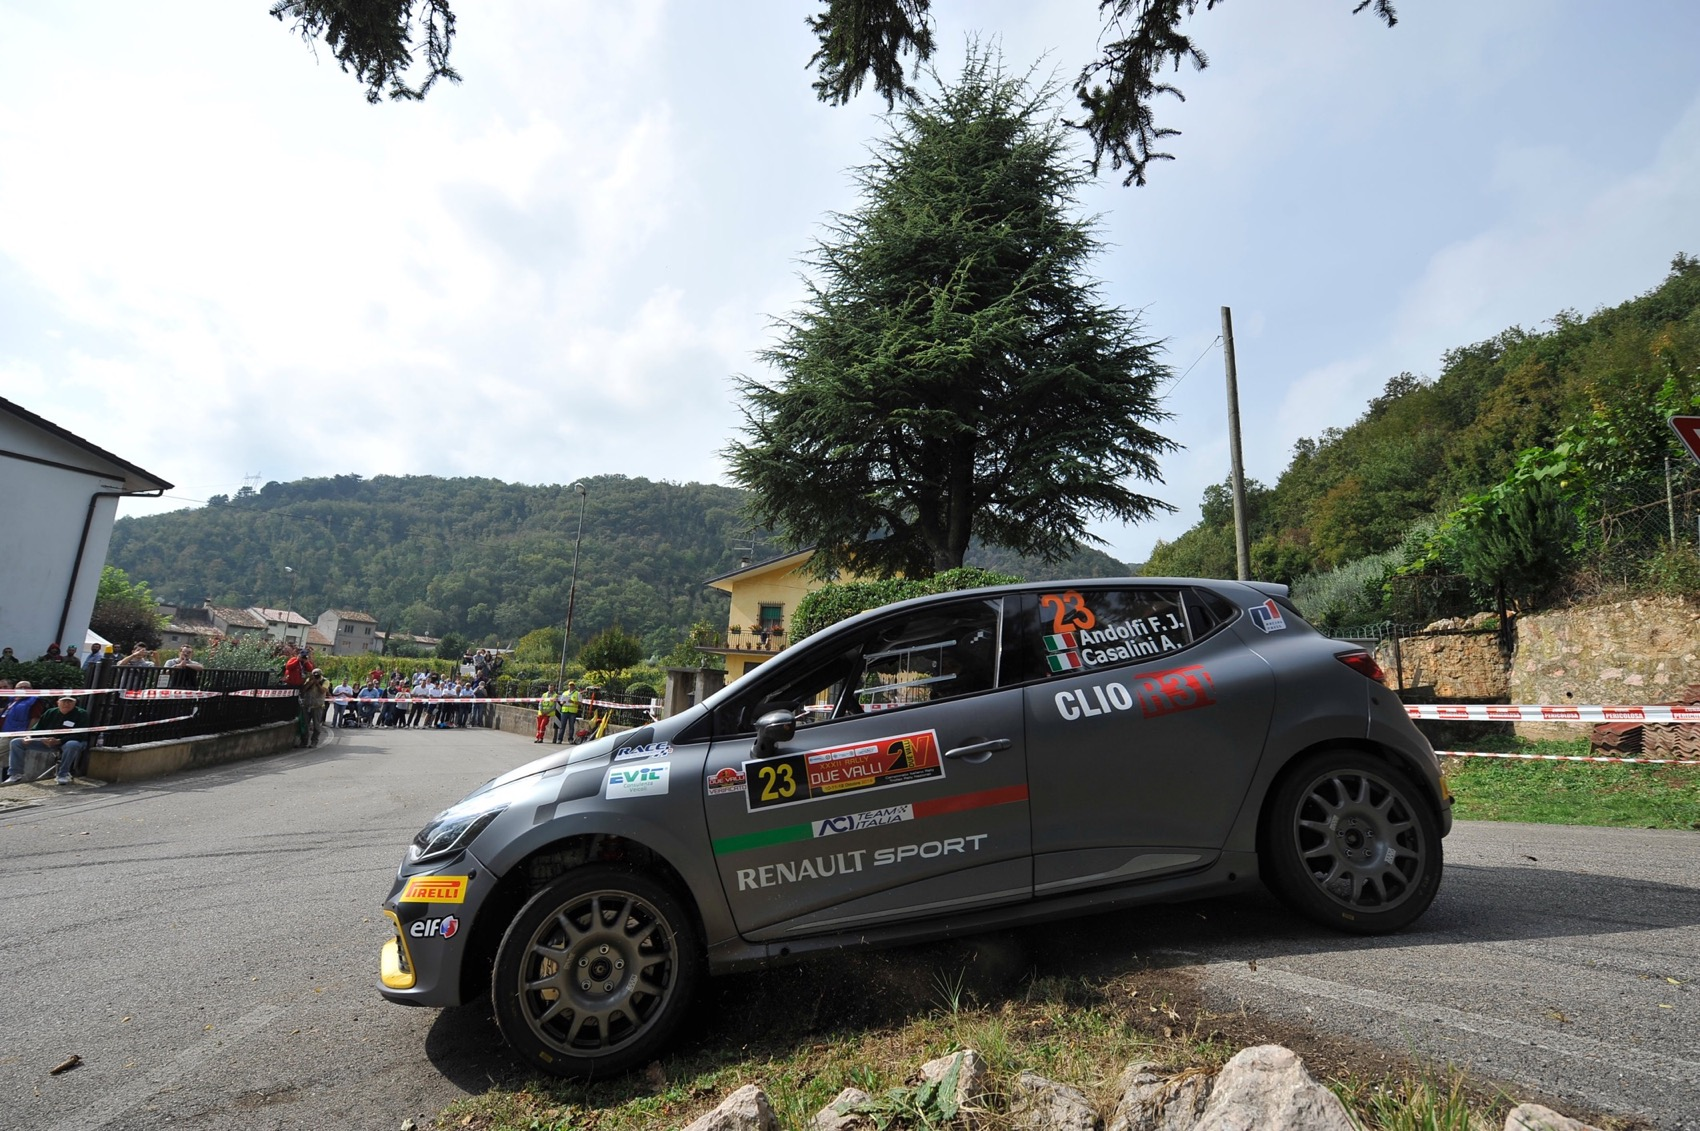 Trofei Renault Rally al via